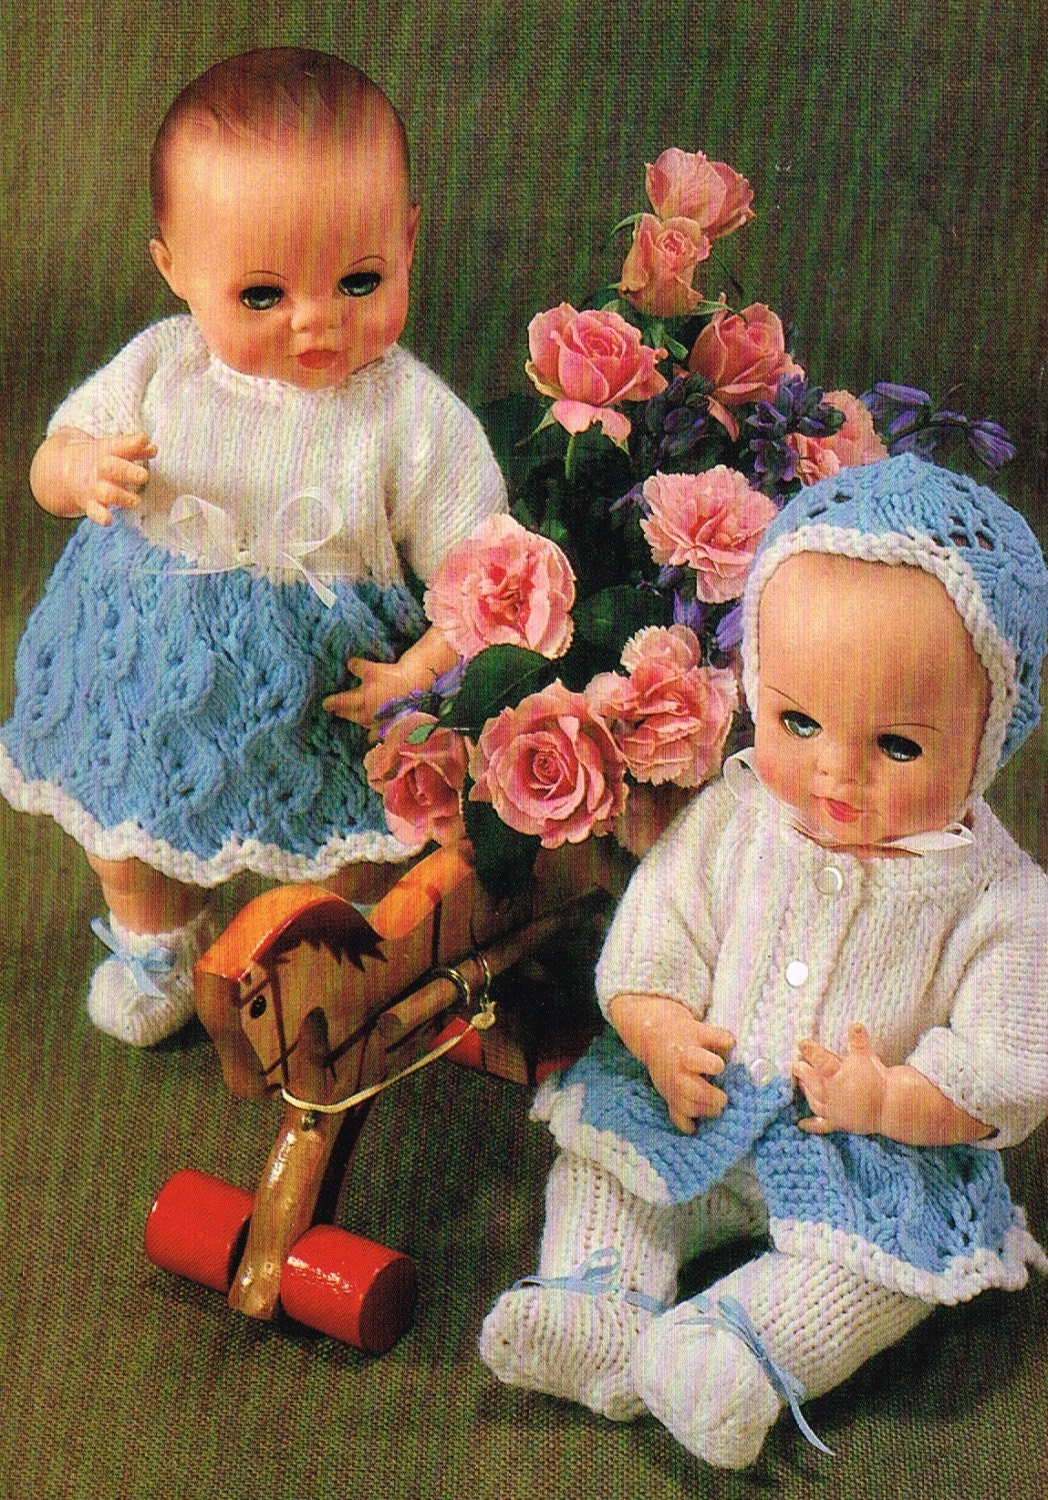 Knitting Patterns For Dolls Clothes 12 Inch : Dolls clothes knitting pattern for 12 inch doll. PDF Instant